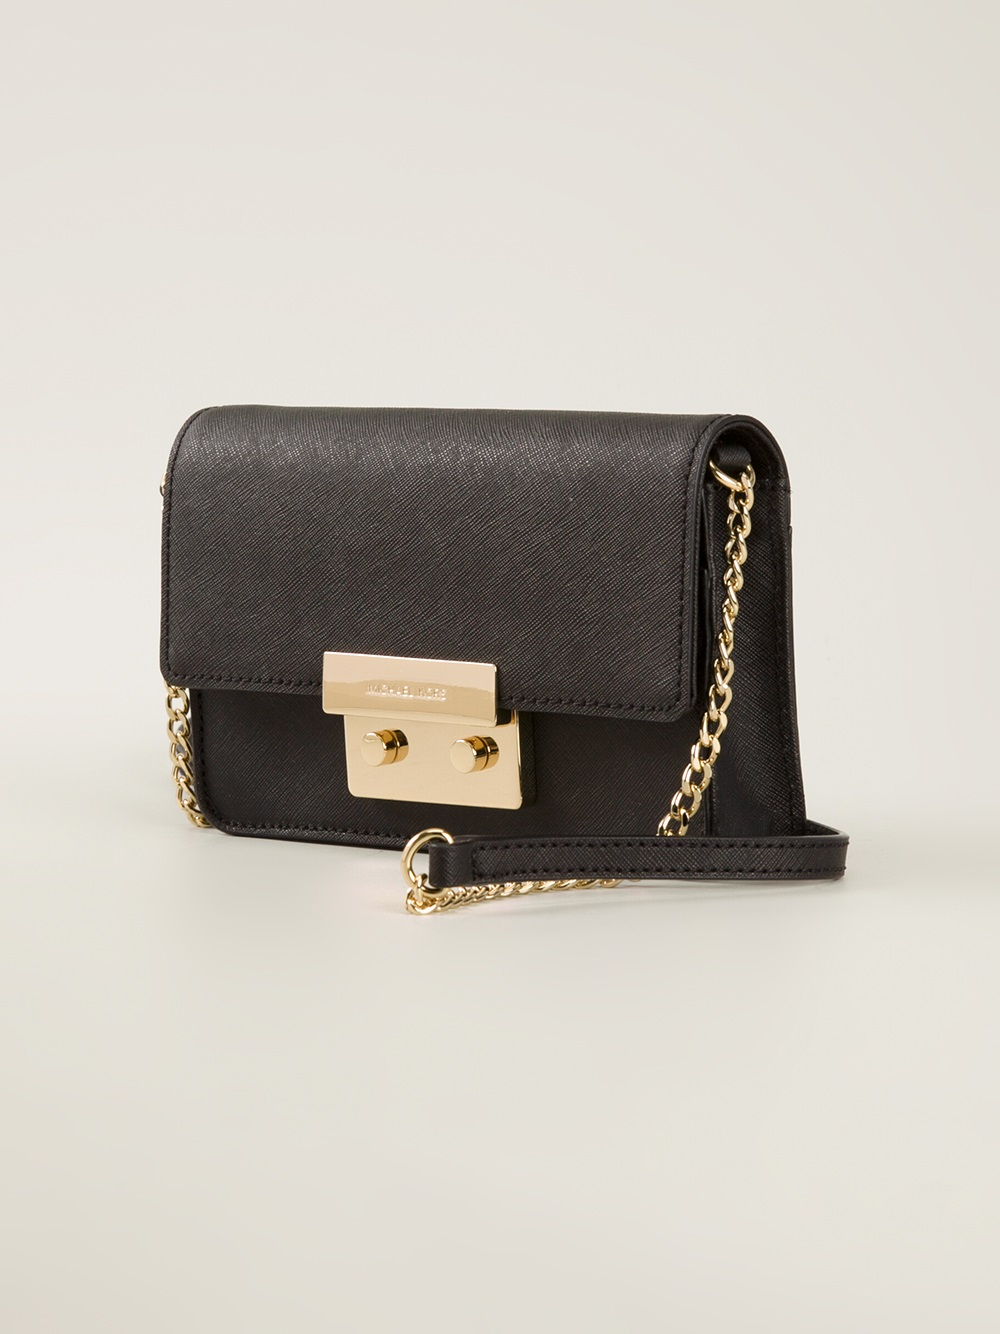 69a9475a7b6d ... coupon for lyst michael michael kors gold buckle cross body bag in  black 6c12f 0210e